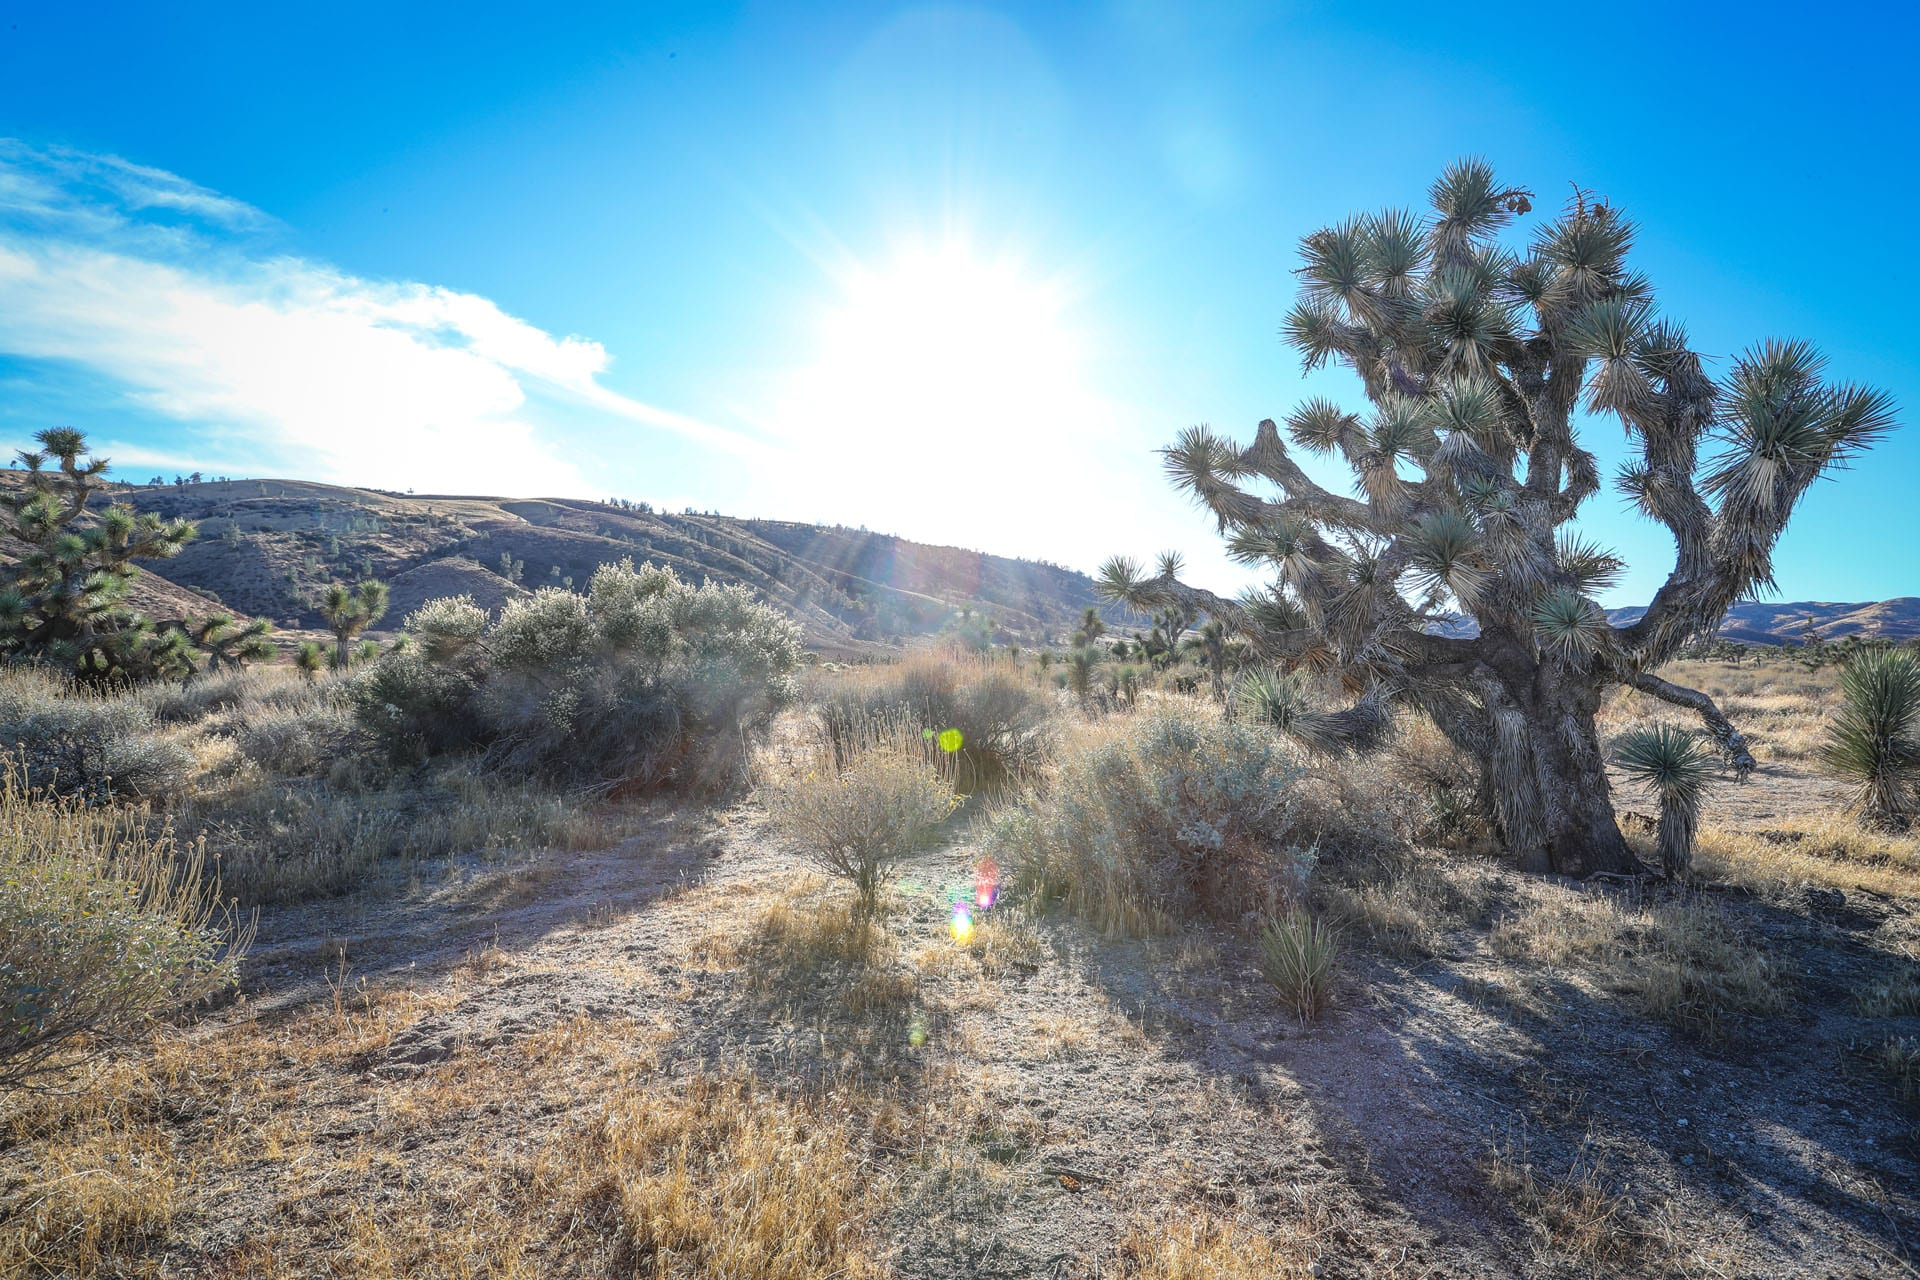 Joshua tree and yucca and other life in a desert